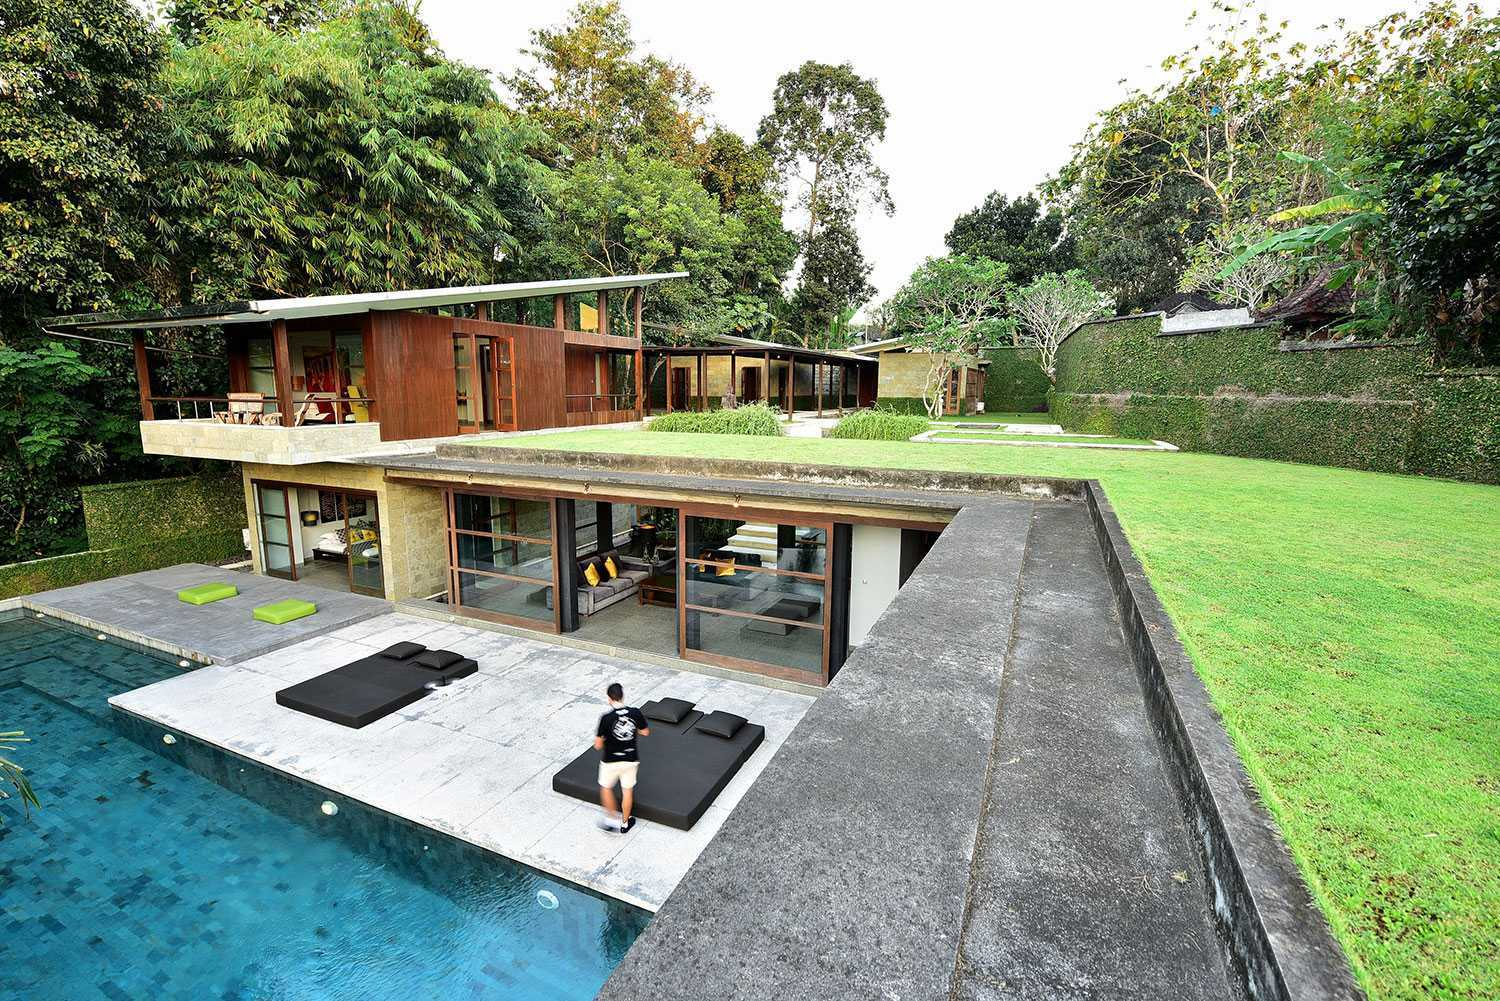 Agung Budi Raharsa | Architecture & Engineering Vanishing Villa - Bali Bali, Indonesia Kabupaten Tabanan, Bali, Indonesia Exterior View Contemporary 49900